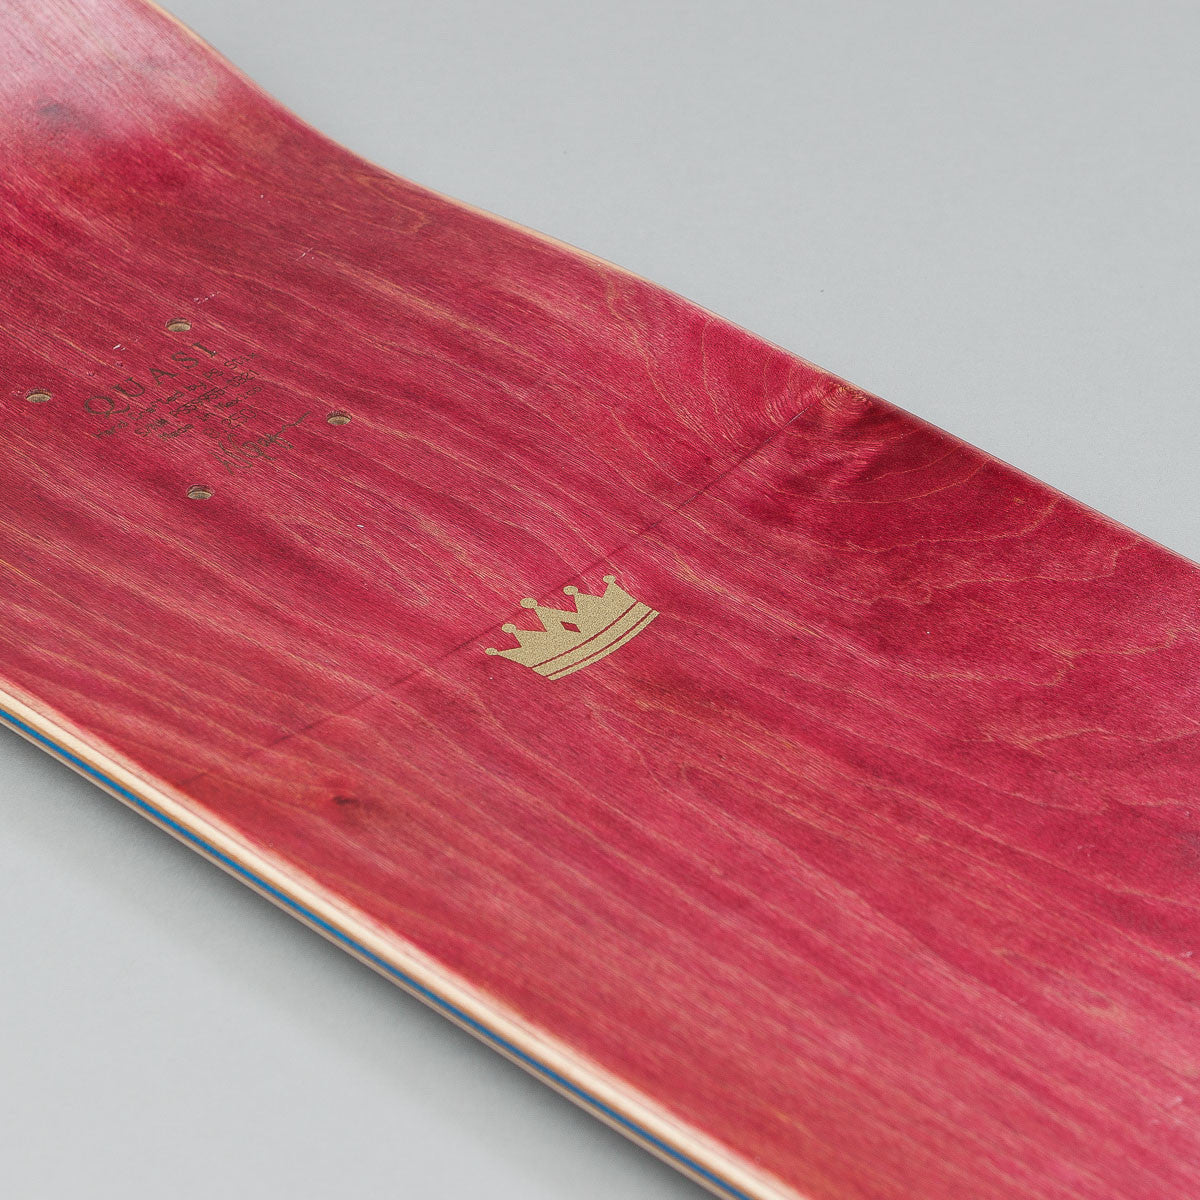 Quasi Skateboards Crockett 'Prince' [Two] Deck - Brown Wash 8.25""